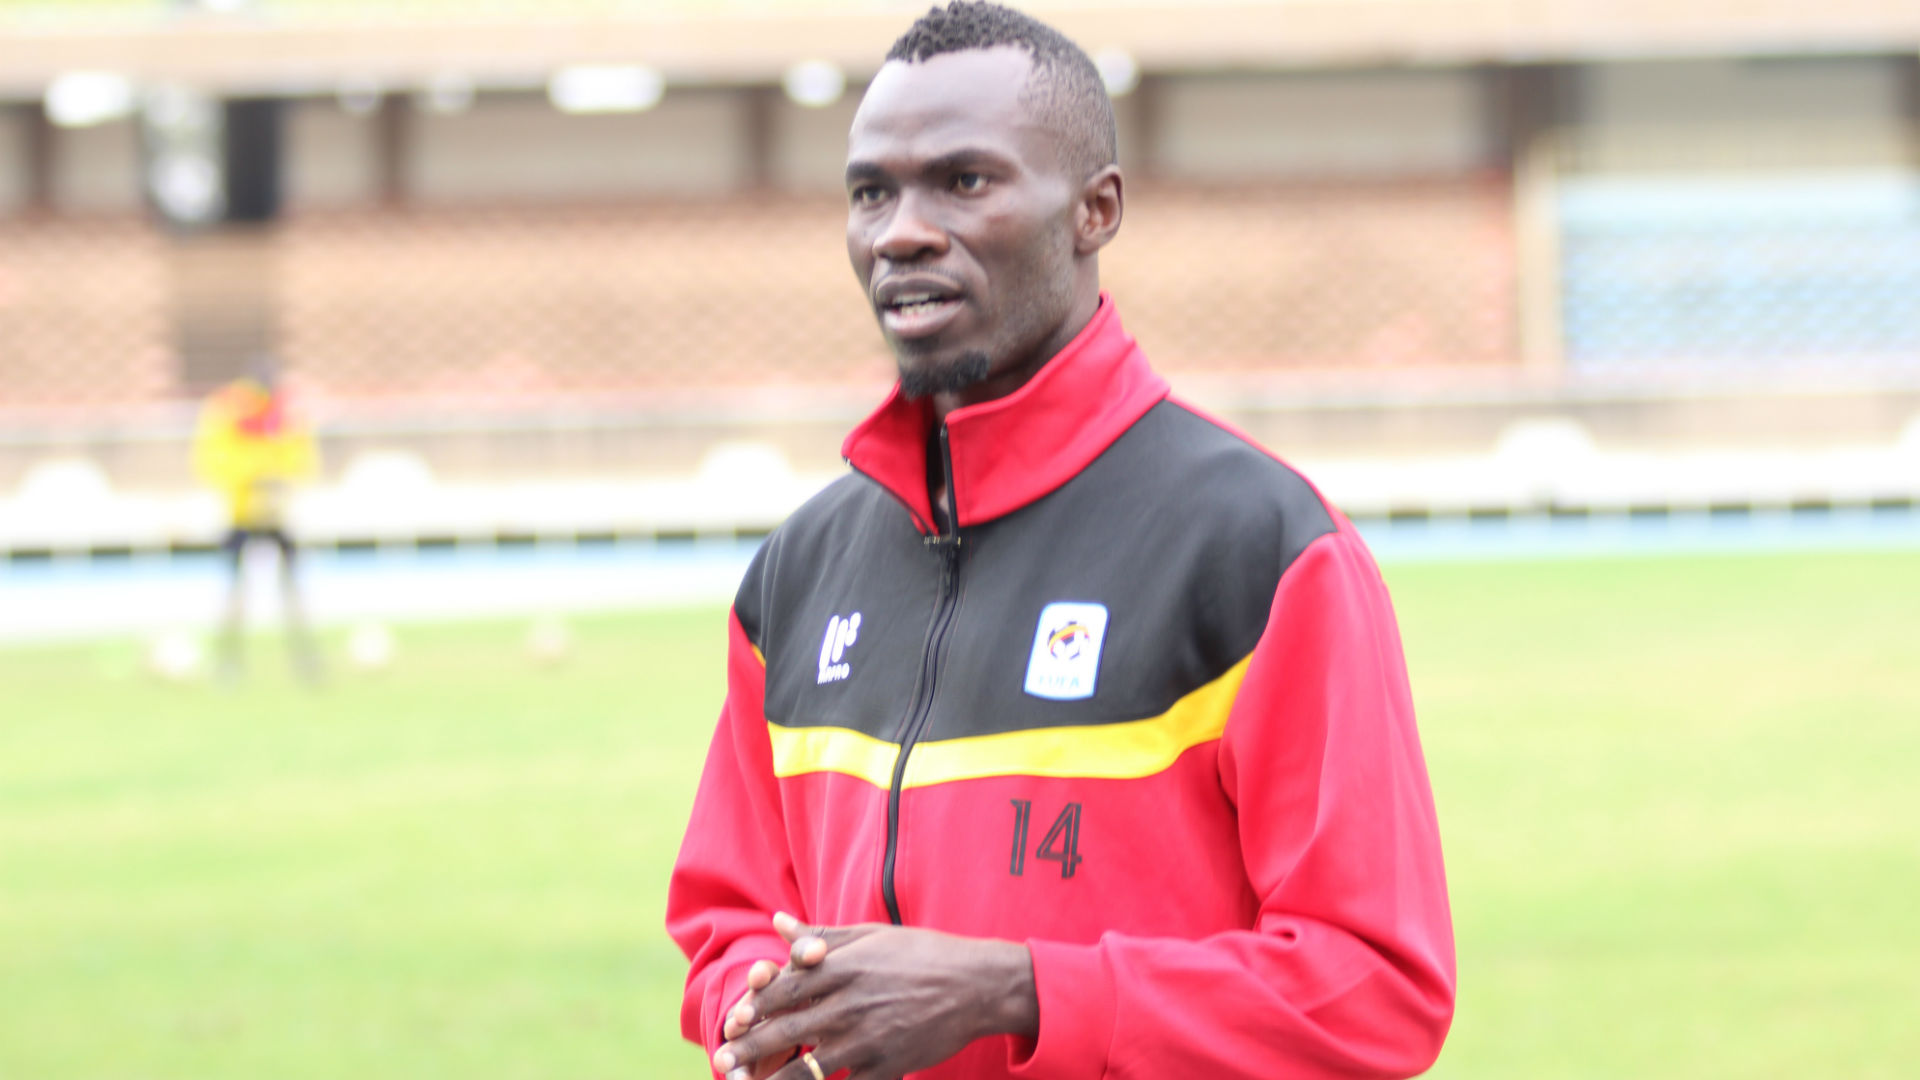 Uganda striker Okwi set to miss Al Ittihad league game after testing Covid-19 positive